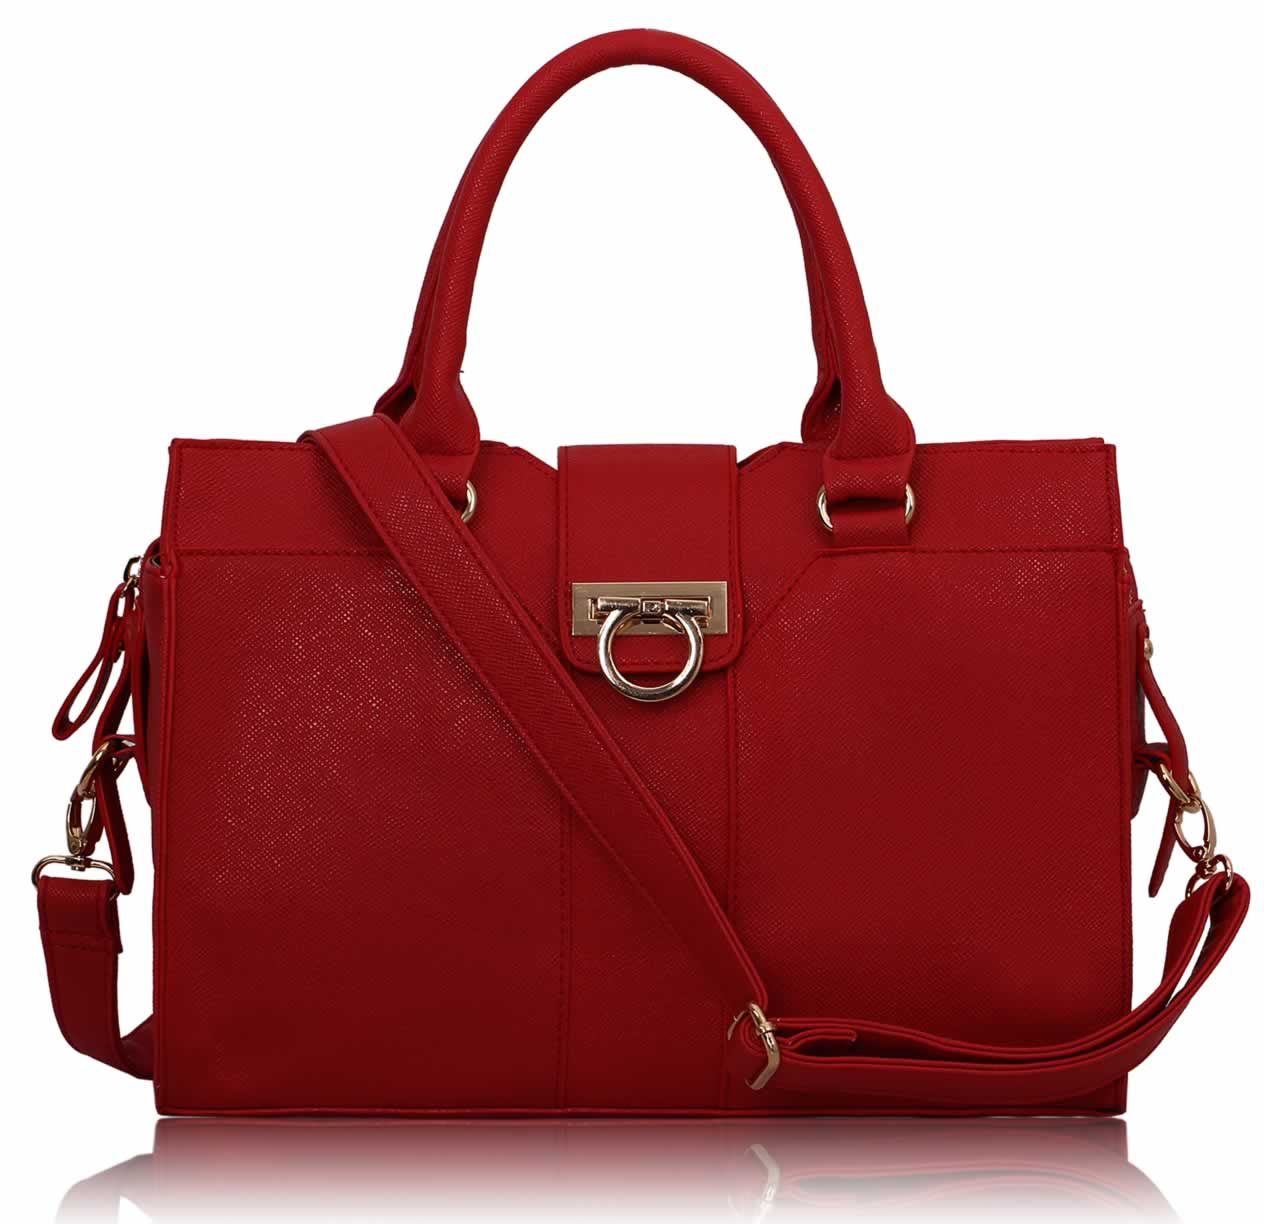 mobile home strap html with Ls0055 Red Fashiontote Handbag on Fitbit fb103by one wirls activity sleep tracker burgandy in addition 32270211009 furthermore 32341044714 moreover 32848292520 together with Strapse Und Popsongs Die Affaere Des Koenigs Bei Lanz.